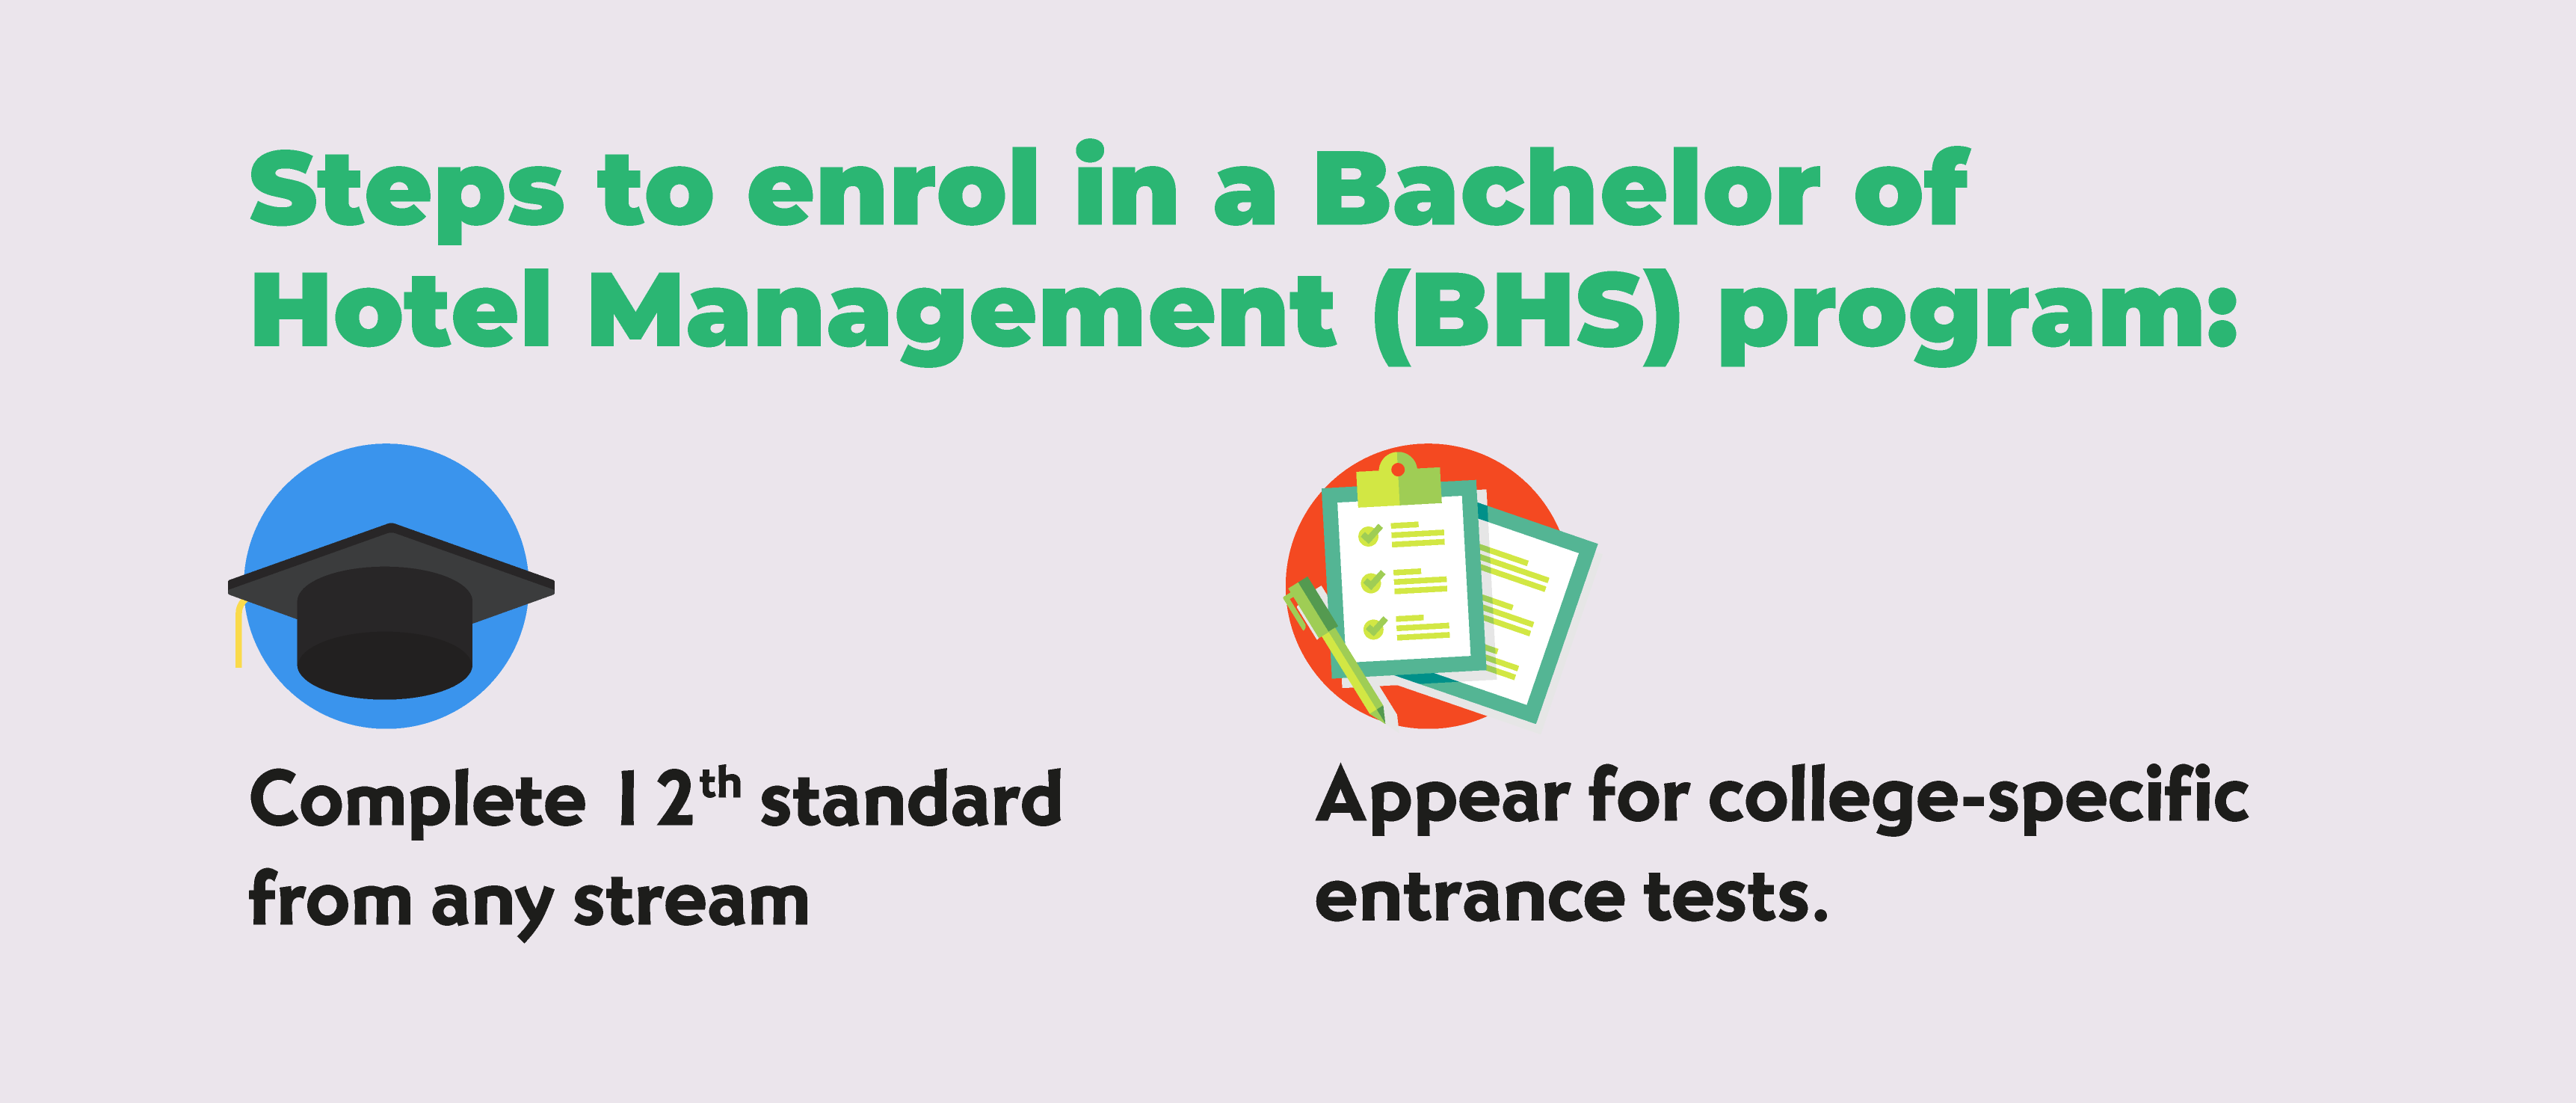 Steps to enrol in BHS program